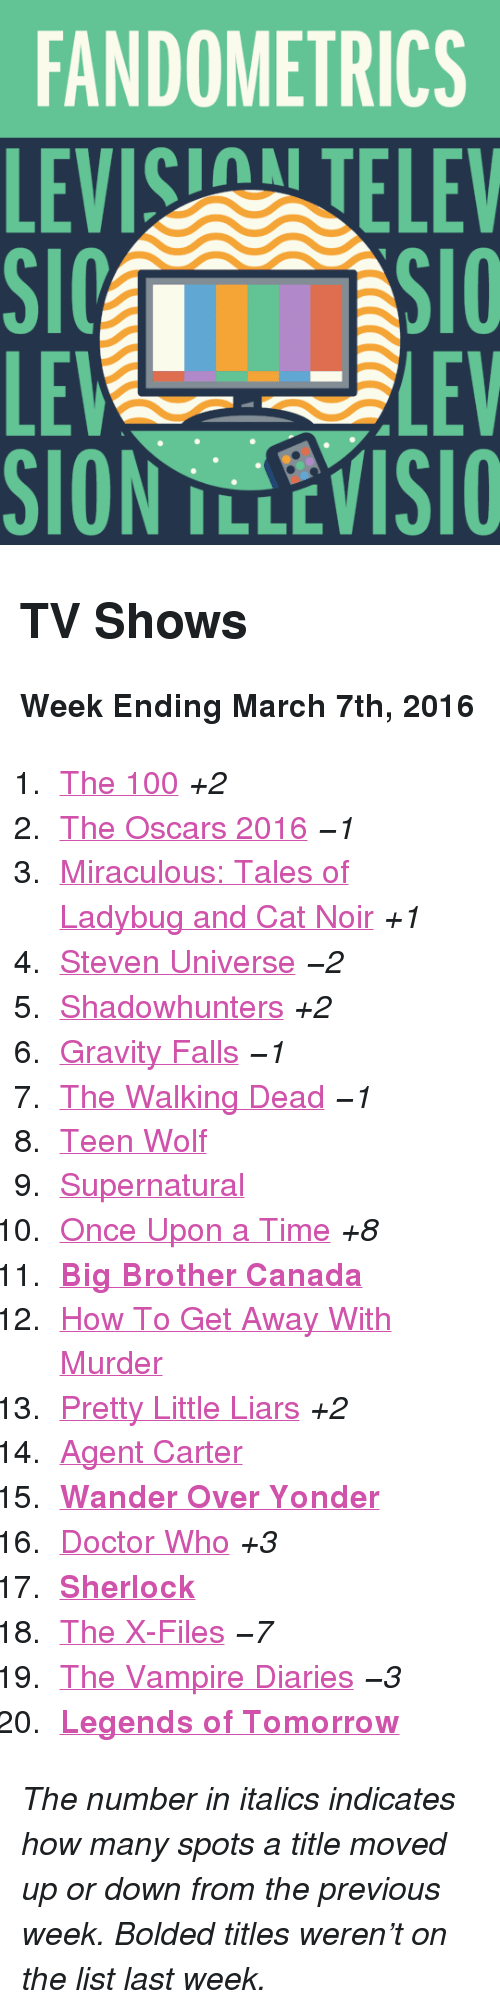 """Anaconda, Doctor, and Oscars: FANDOMETRICS  LEVIS TELEV  LE  SION TLLEVISIO  LEV <h2>TV Shows</h2><p><b>Week Ending March 7th, 2016</b></p><ol><li><a href=""""http://www.tumblr.com/search/the%20100"""">The 100</a><i>+2</i></li>  <li><a href=""""http://www.tumblr.com/search/oscars"""">The Oscars 2016</a><i>−1</i></li>  <li><a href=""""http://www.tumblr.com/search/miraculous%20ladybug"""">Miraculous: Tales of Ladybug and Cat Noir</a><i>+1</i></li>  <li><a href=""""http://www.tumblr.com/search/steven%20universe"""">Steven Universe</a><i>−2</i></li>  <li><a href=""""http://www.tumblr.com/search/shadowhunters"""">Shadowhunters</a><i>+2</i></li>  <li><a href=""""http://www.tumblr.com/search/gravity%20falls"""">Gravity Falls</a><i>−1</i></li>  <li><a href=""""http://www.tumblr.com/search/the%20walking%20dead"""">The Walking Dead</a><i>−1</i></li>  <li><a href=""""http://www.tumblr.com/search/teen%20wolf"""">Teen Wolf</a></li>  <li><a href=""""http://www.tumblr.com/search/supernatural"""">Supernatural</a></li>  <li><a href=""""http://www.tumblr.com/search/ouat"""">Once Upon a Time</a><i>+8</i></li>  <li><a href=""""http://www.tumblr.com/search/bbcan4""""><b>Big Brother Canada</b></a></li>  <li><a href=""""http://www.tumblr.com/search/how%20to%20get%20away%20with%20murder"""">How To Get Away With Murder</a></li>  <li><a href=""""http://www.tumblr.com/search/pretty%20little%20liars"""">Pretty Little Liars</a><i>+2</i></li>  <li><a href=""""http://www.tumblr.com/search/agent%20carter"""">Agent Carter</a></li>  <li><a href=""""http://www.tumblr.com/search/wander%20over%20yonder""""><b>Wander Over Yonder</b></a></li>  <li><a href=""""http://www.tumblr.com/search/doctor%20who"""">Doctor Who</a><i>+3</i></li>  <li><a href=""""http://www.tumblr.com/search/sherlock""""><b>Sherlock</b></a></li>  <li><a href=""""http://www.tumblr.com/search/x%20files"""">The X-Files</a><i>−7</i></li>  <li><a href=""""http://www.tumblr.com/search/the%20vampire%20diaries"""">The Vampire Diaries</a><i>−3</i></li>  <li><a href=""""http://www.tumblr.com/search/legends%20of%20tomorrow""""><b>Legends of Tomorrow</b></a></li><"""